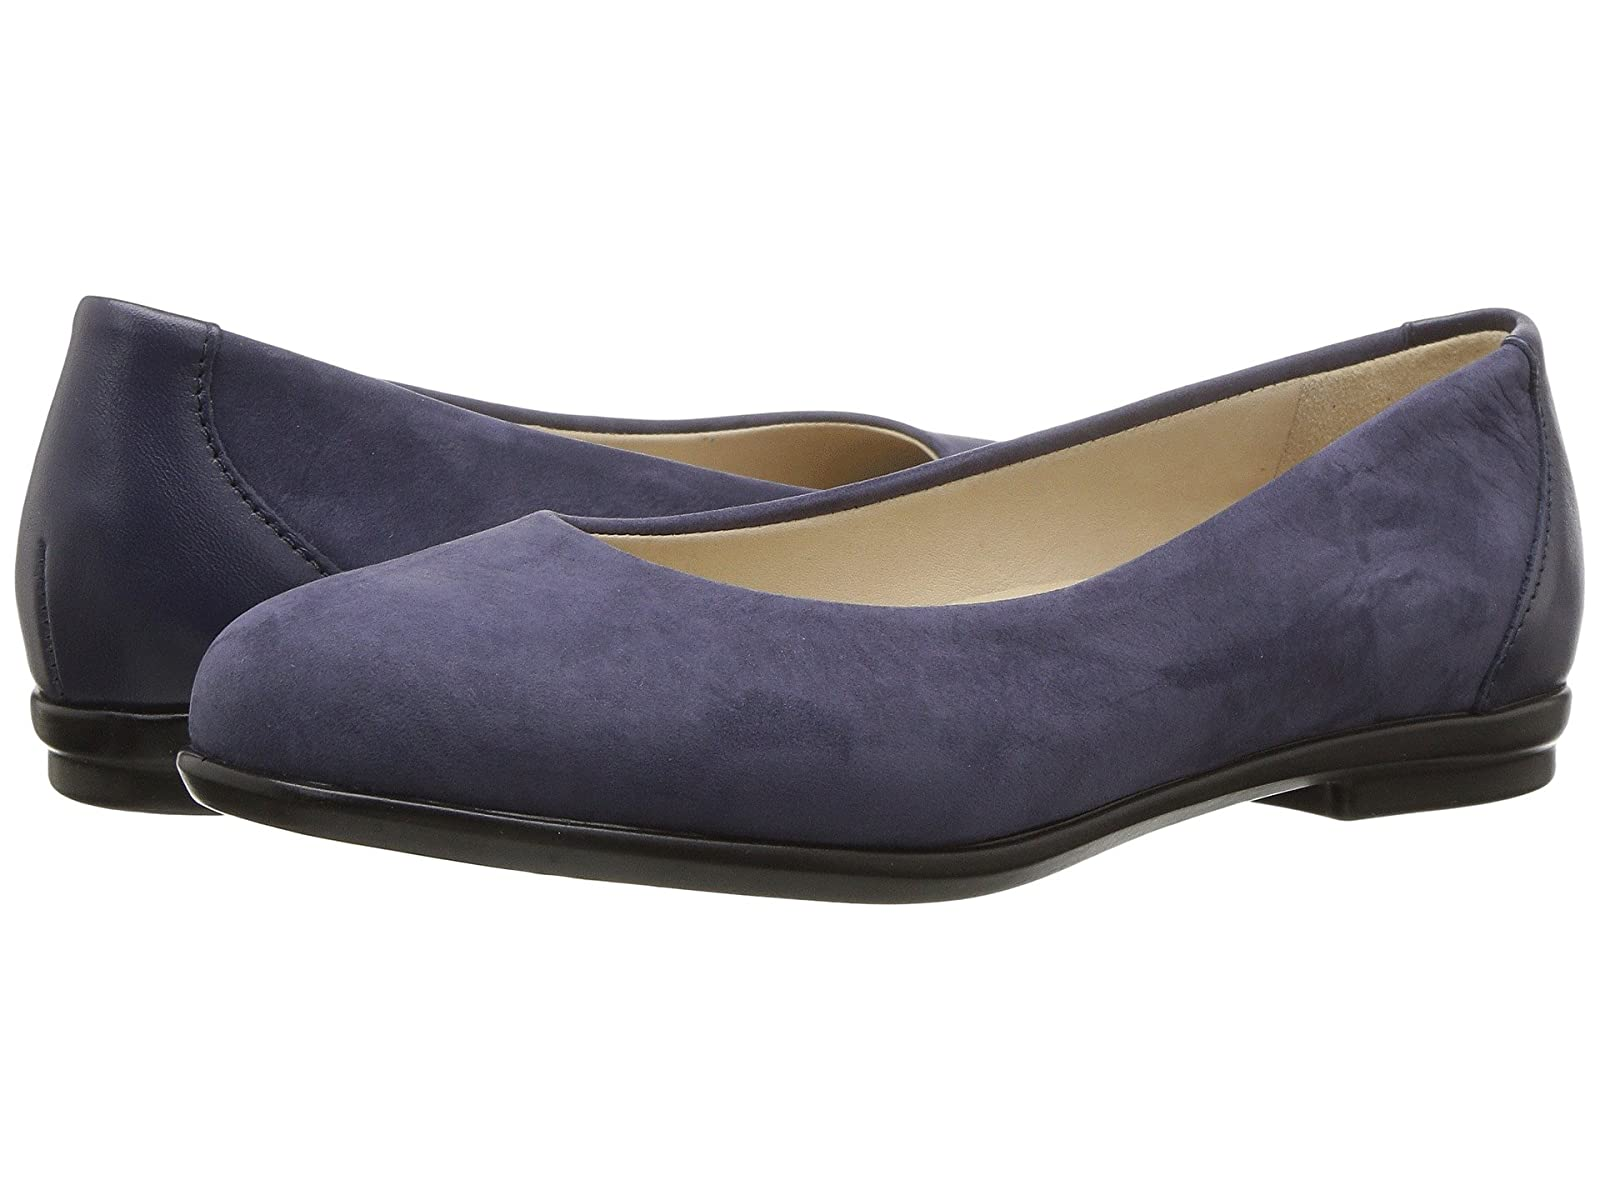 SAS ScenicAtmospheric grades have affordable shoes